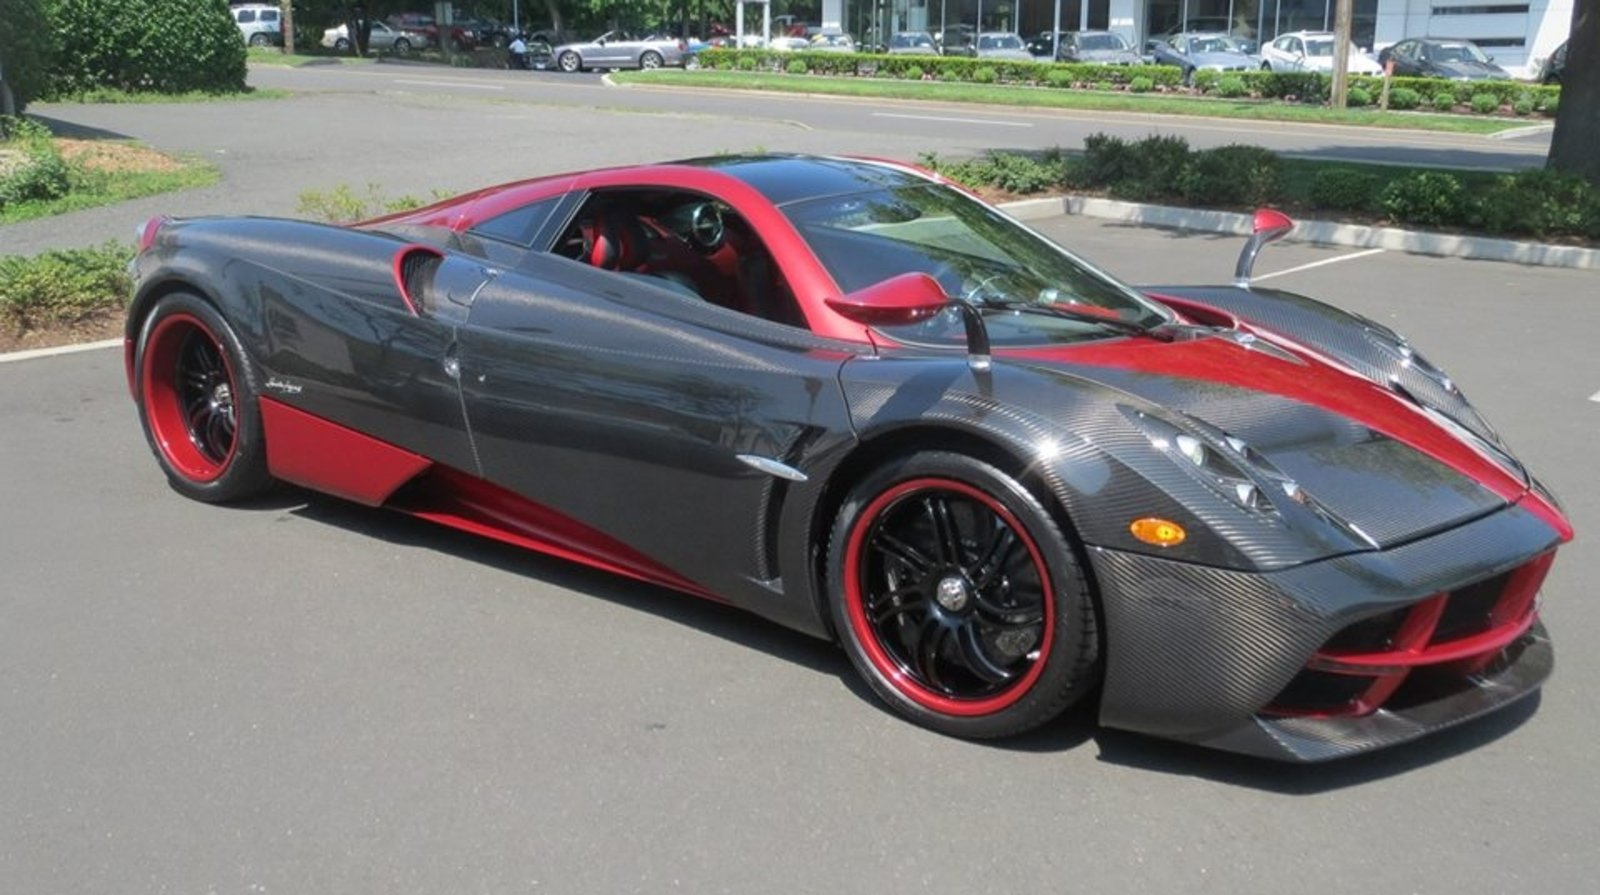 Super Cars For Sale >> First Pagani Huayra Arrives At A U.S. Dealer News - Top Speed